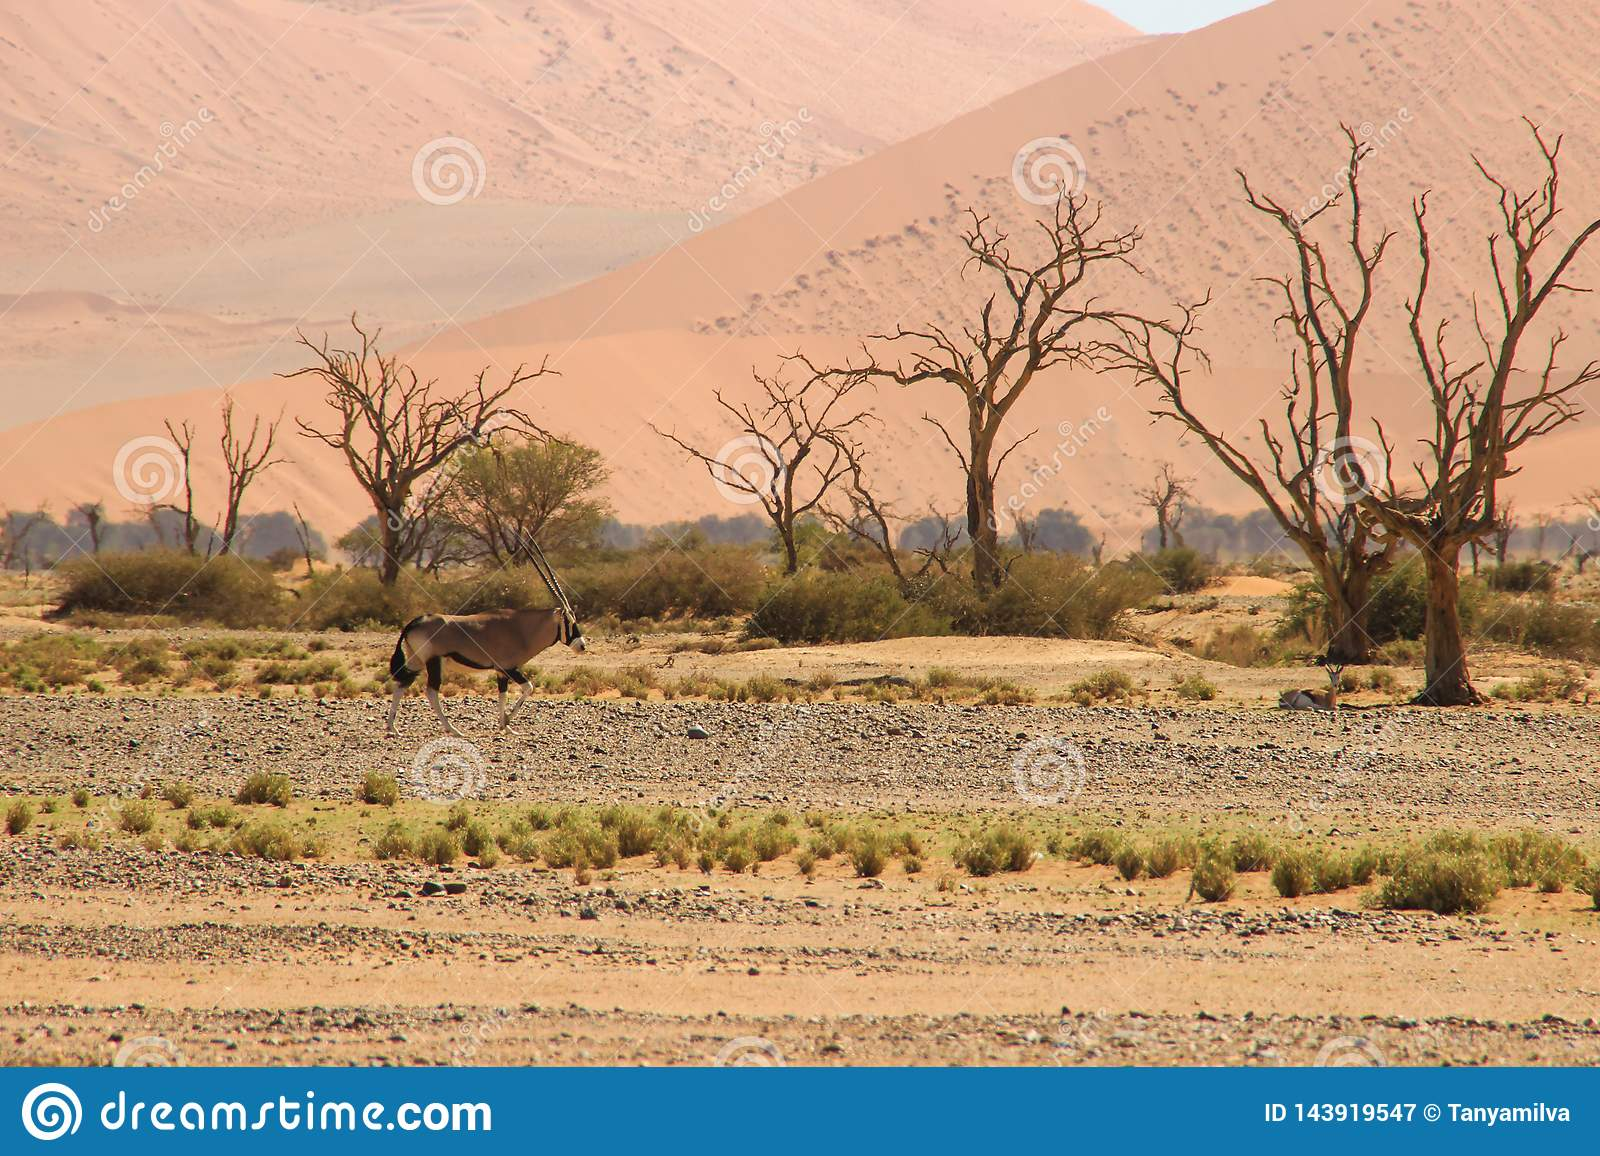 Oryx or antelope with long horns in the Namib Desert, Namibia